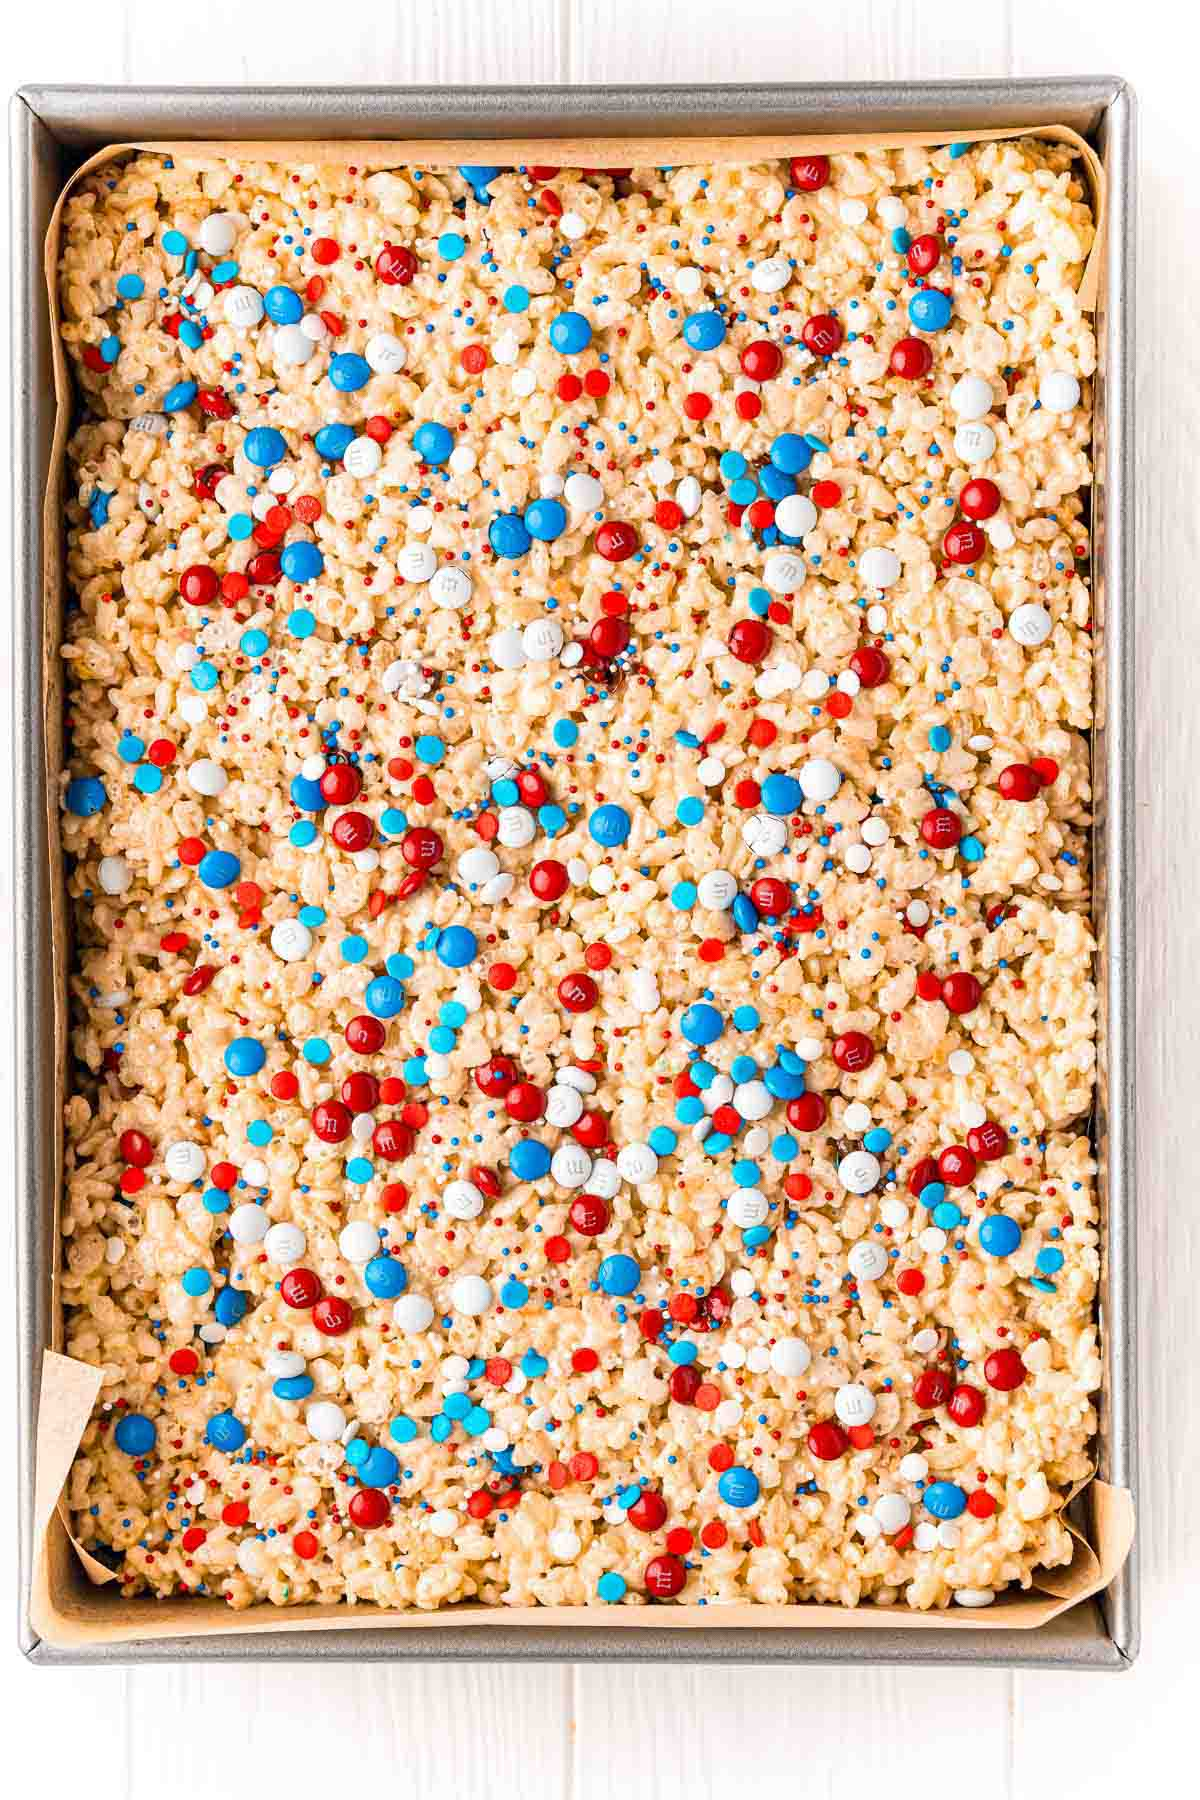 baking dish with 4th of July rice krispie treats inside